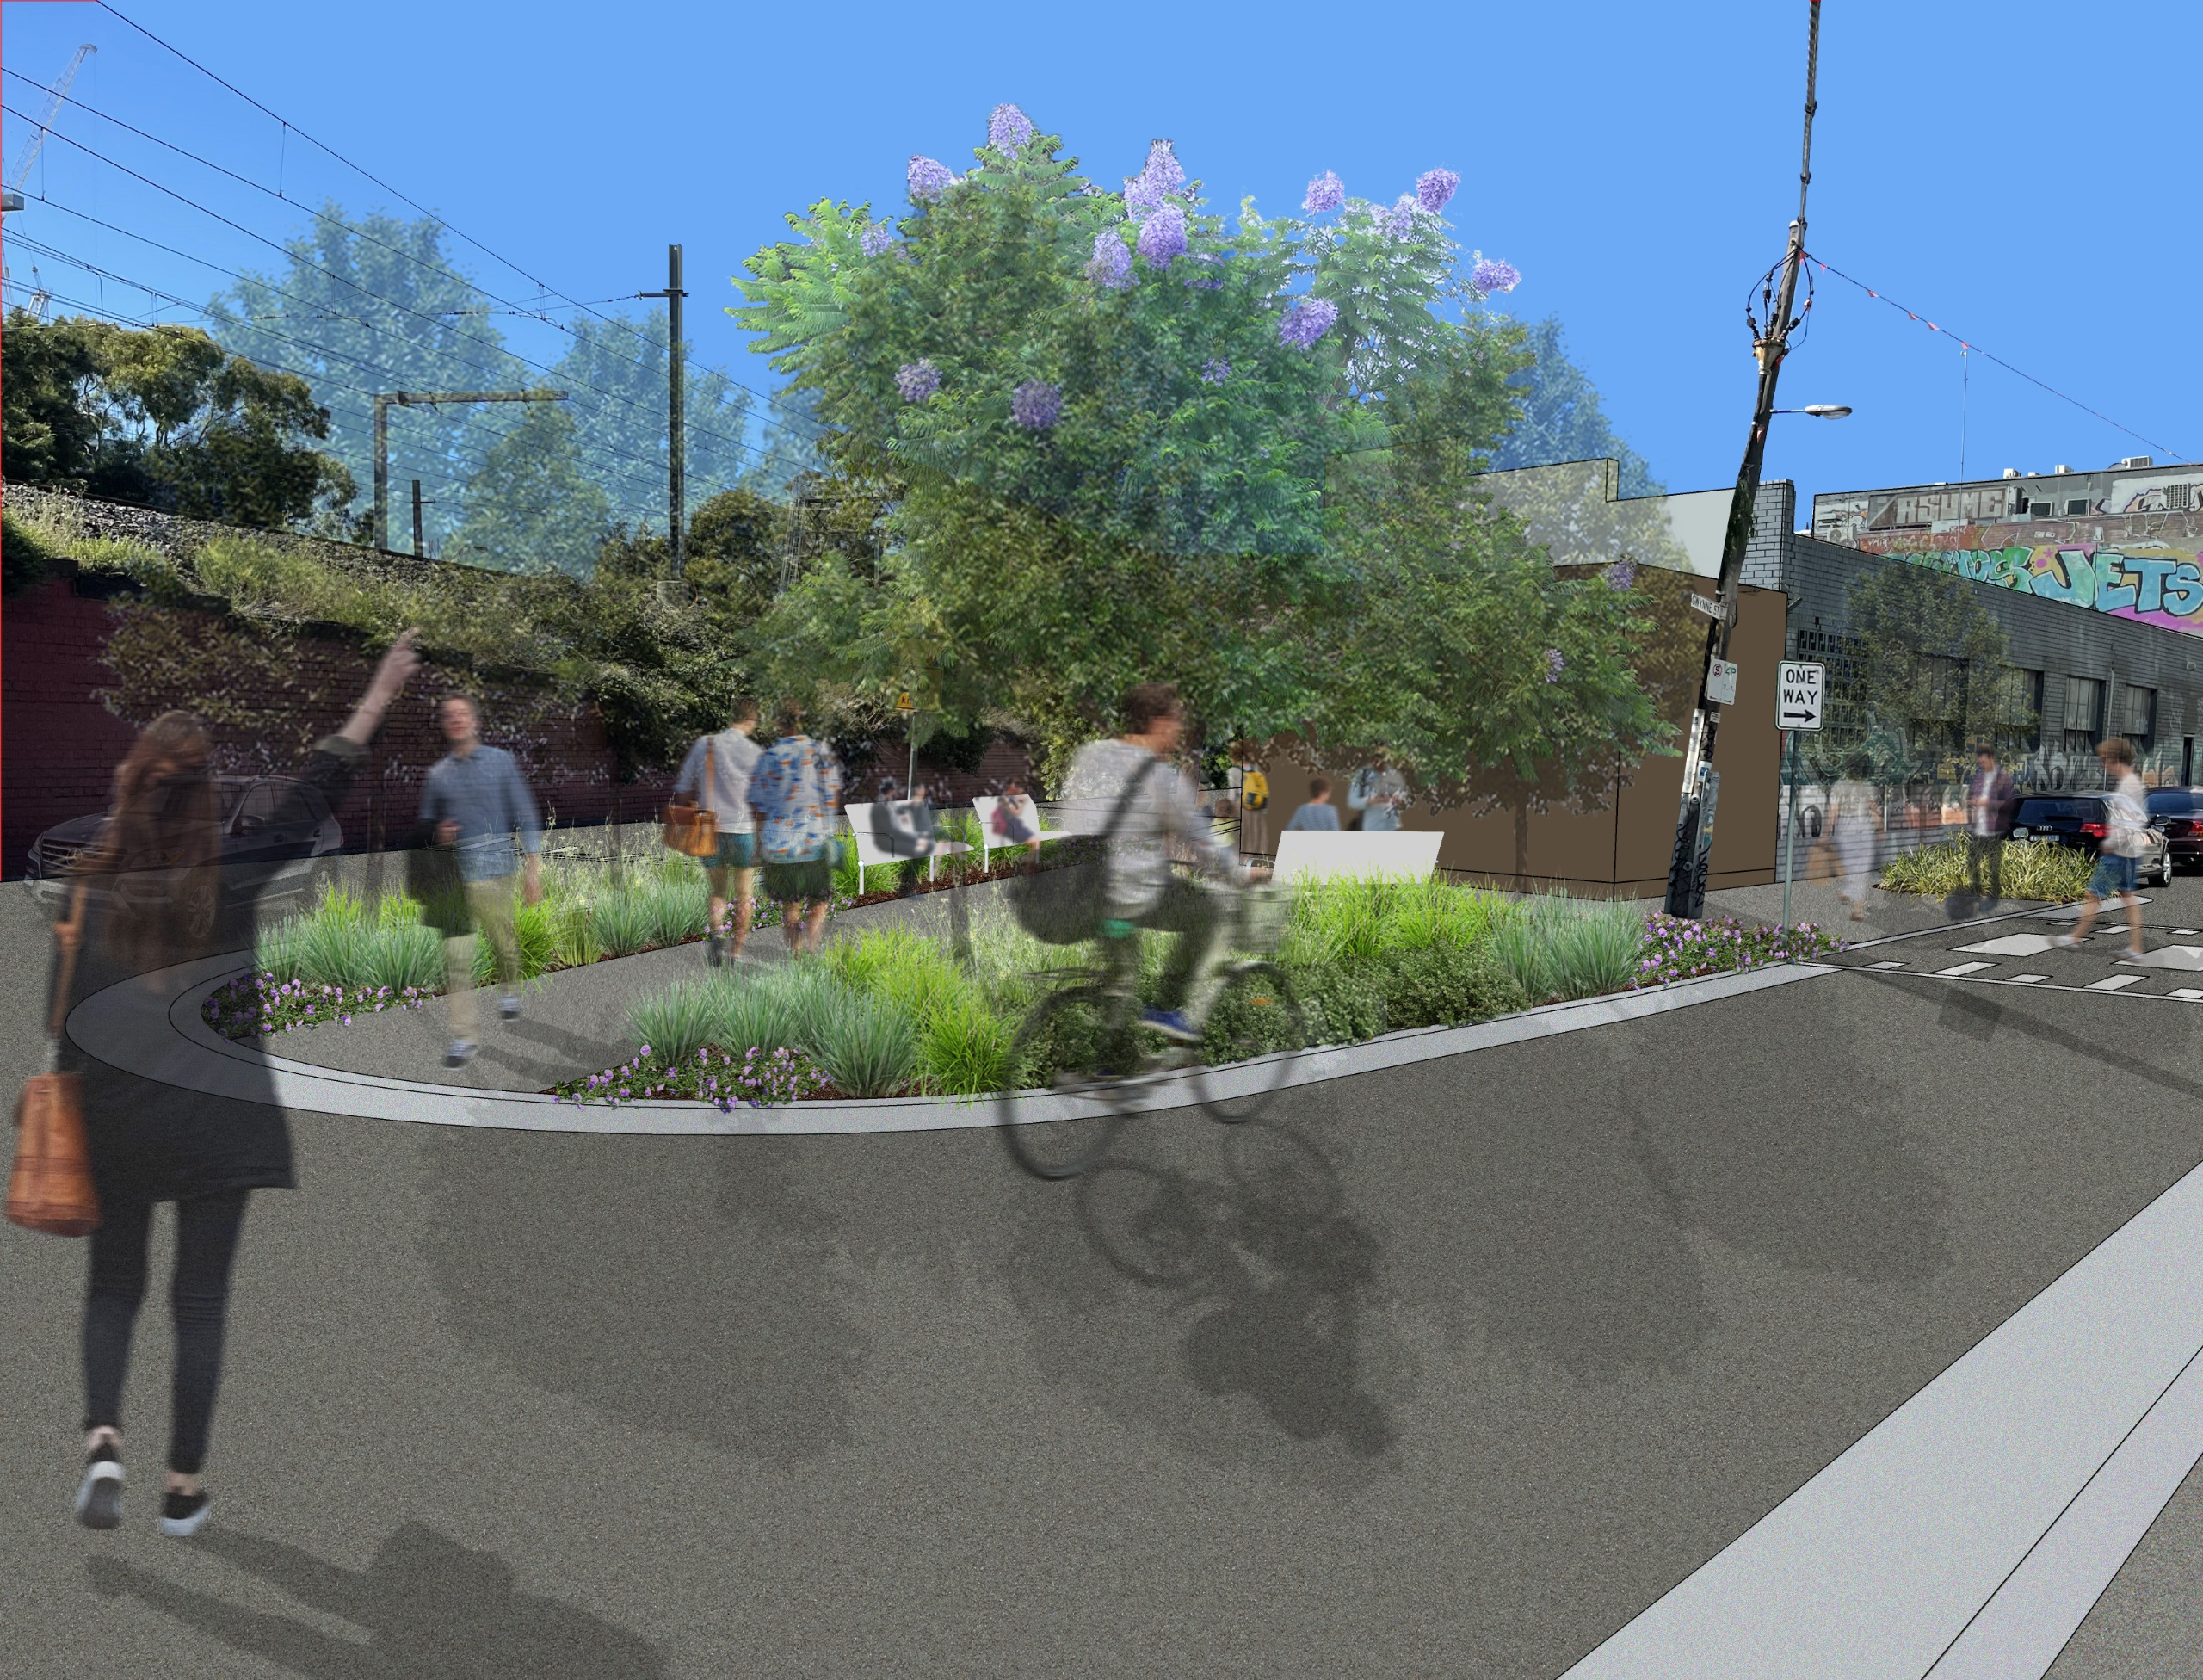 After: Artist's impression of larger urban pocket park with seating and more space